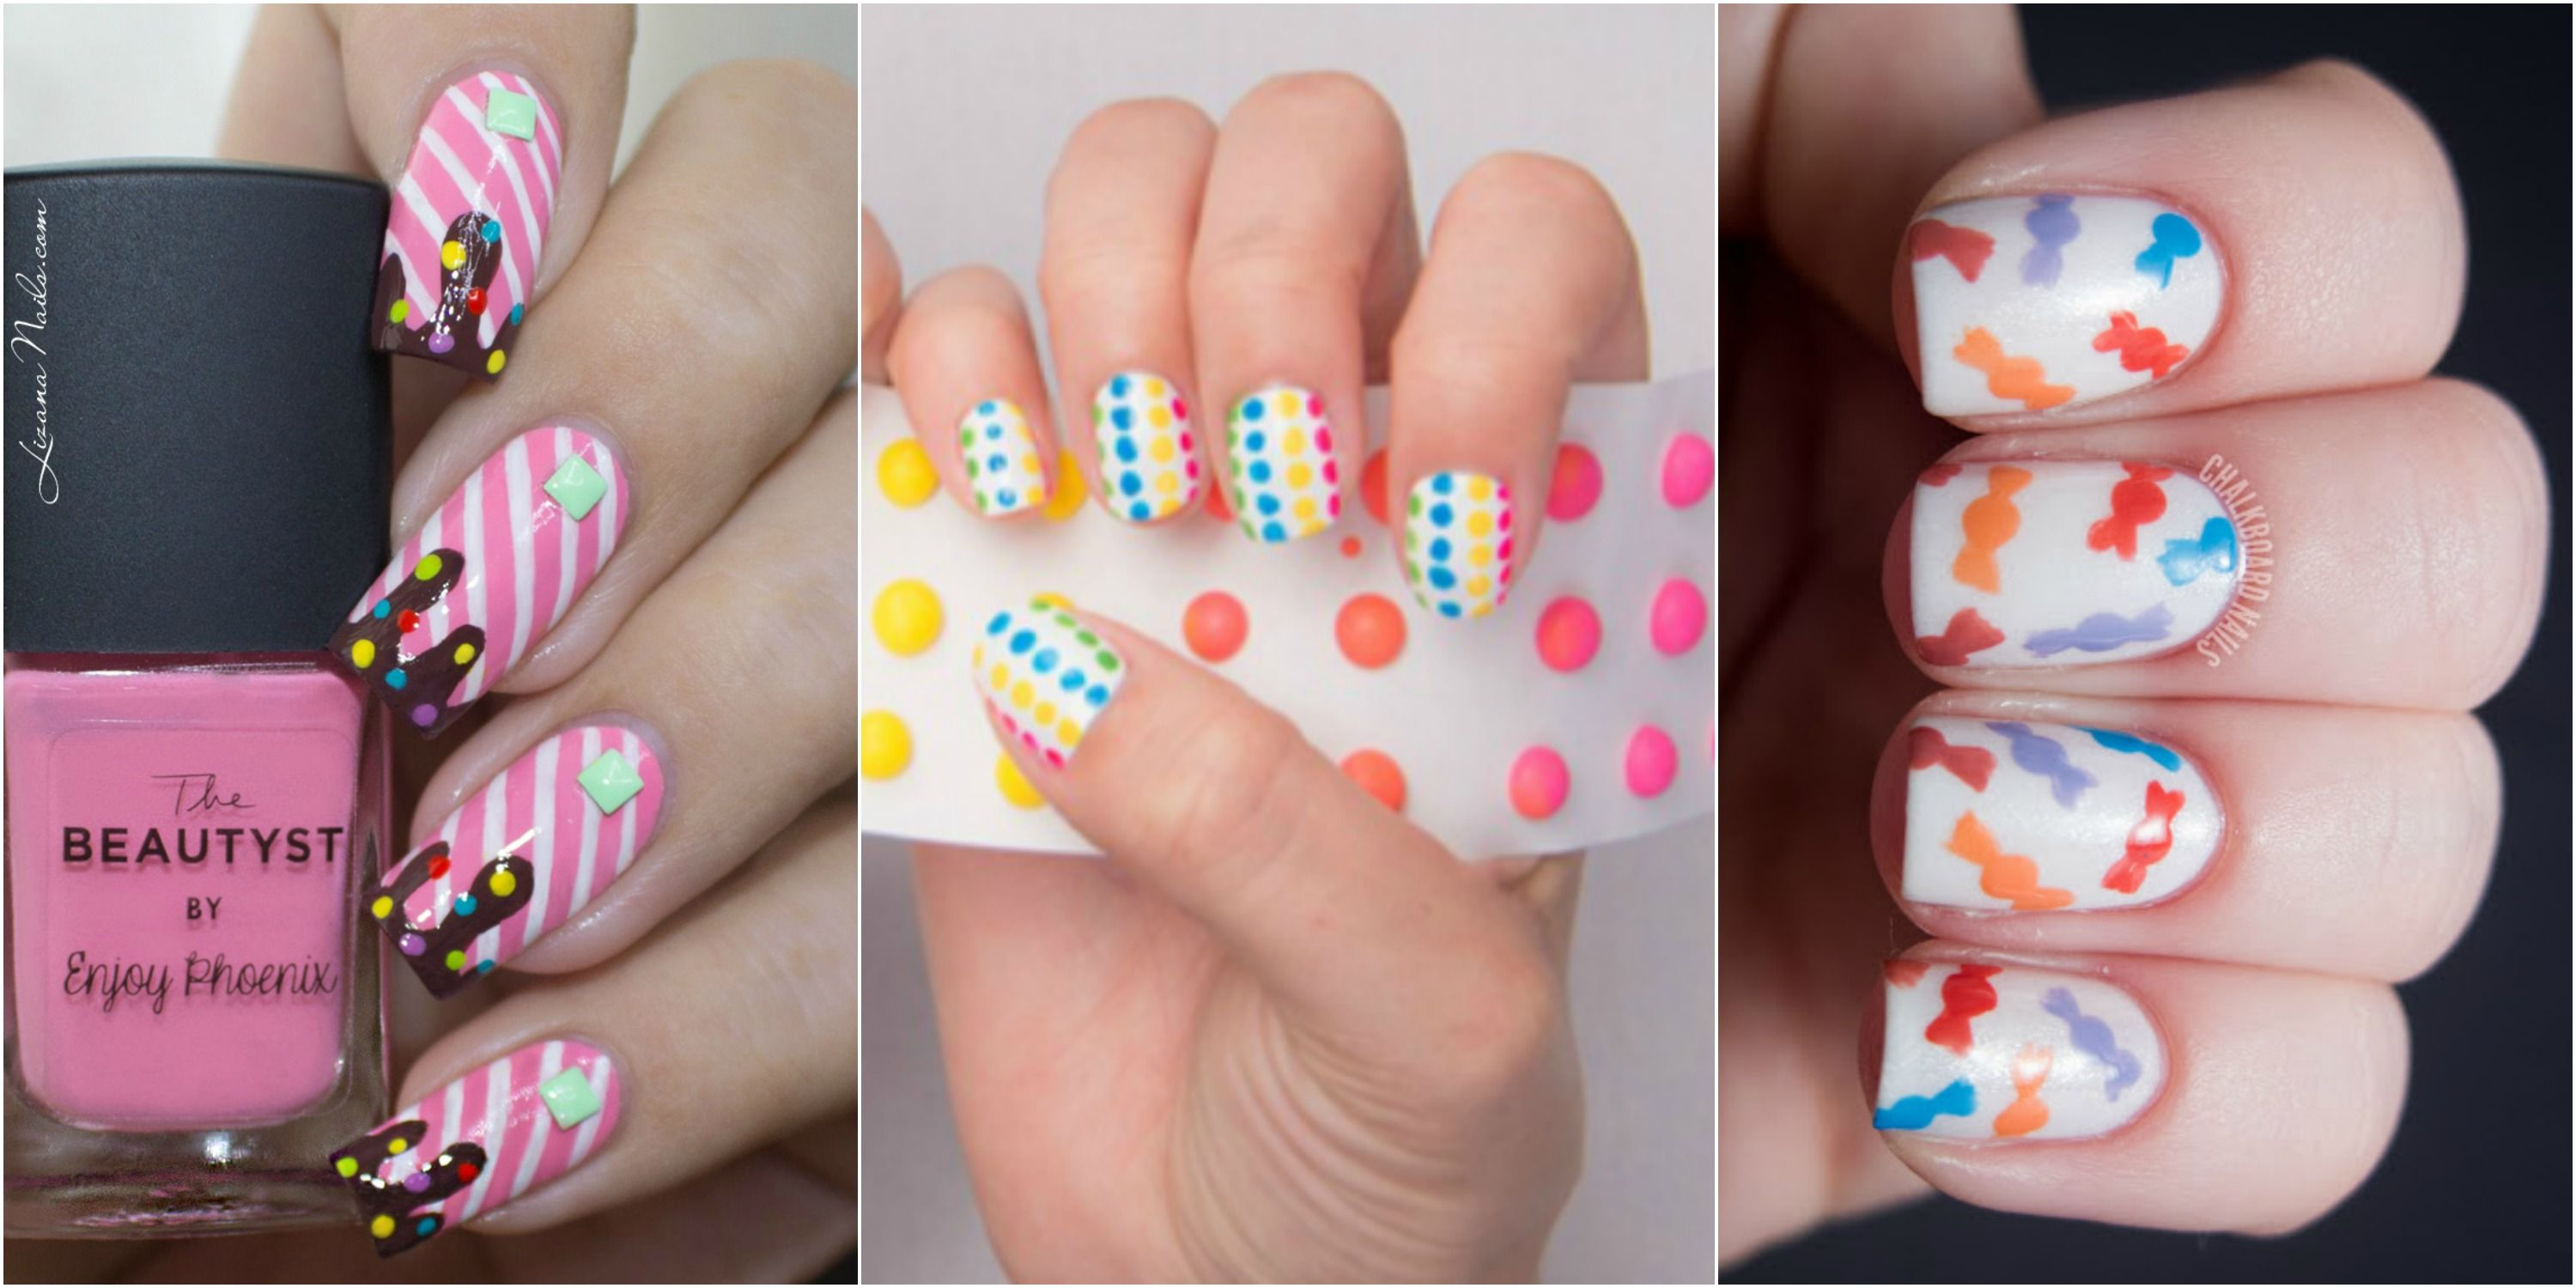 Nice Candy Nail Art Photo - Nail Art Ideas - morihati.com